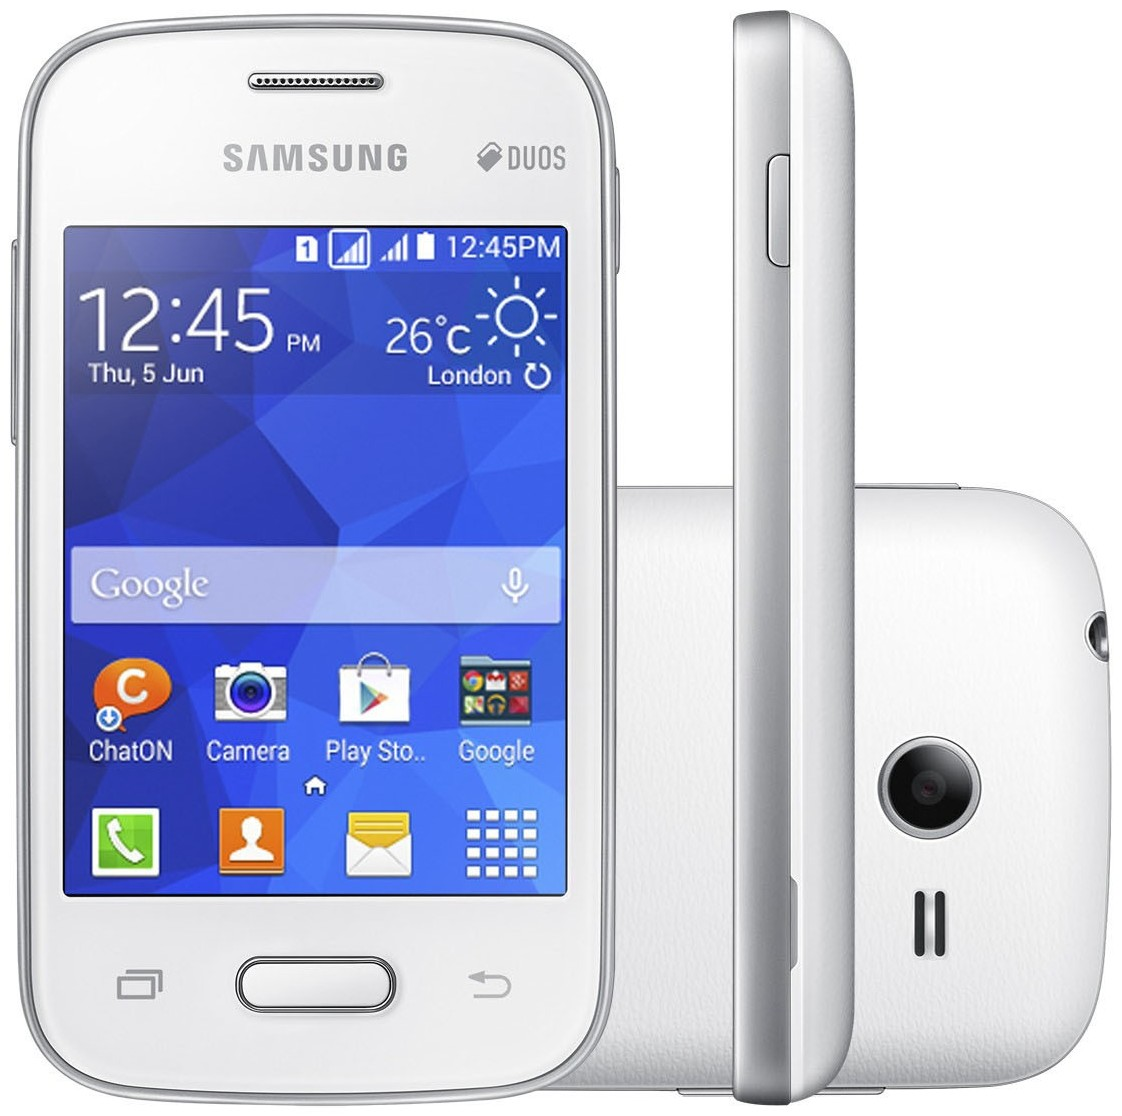 Samsung Galaxy Pocket 2 - Specs and Price - Phonegg